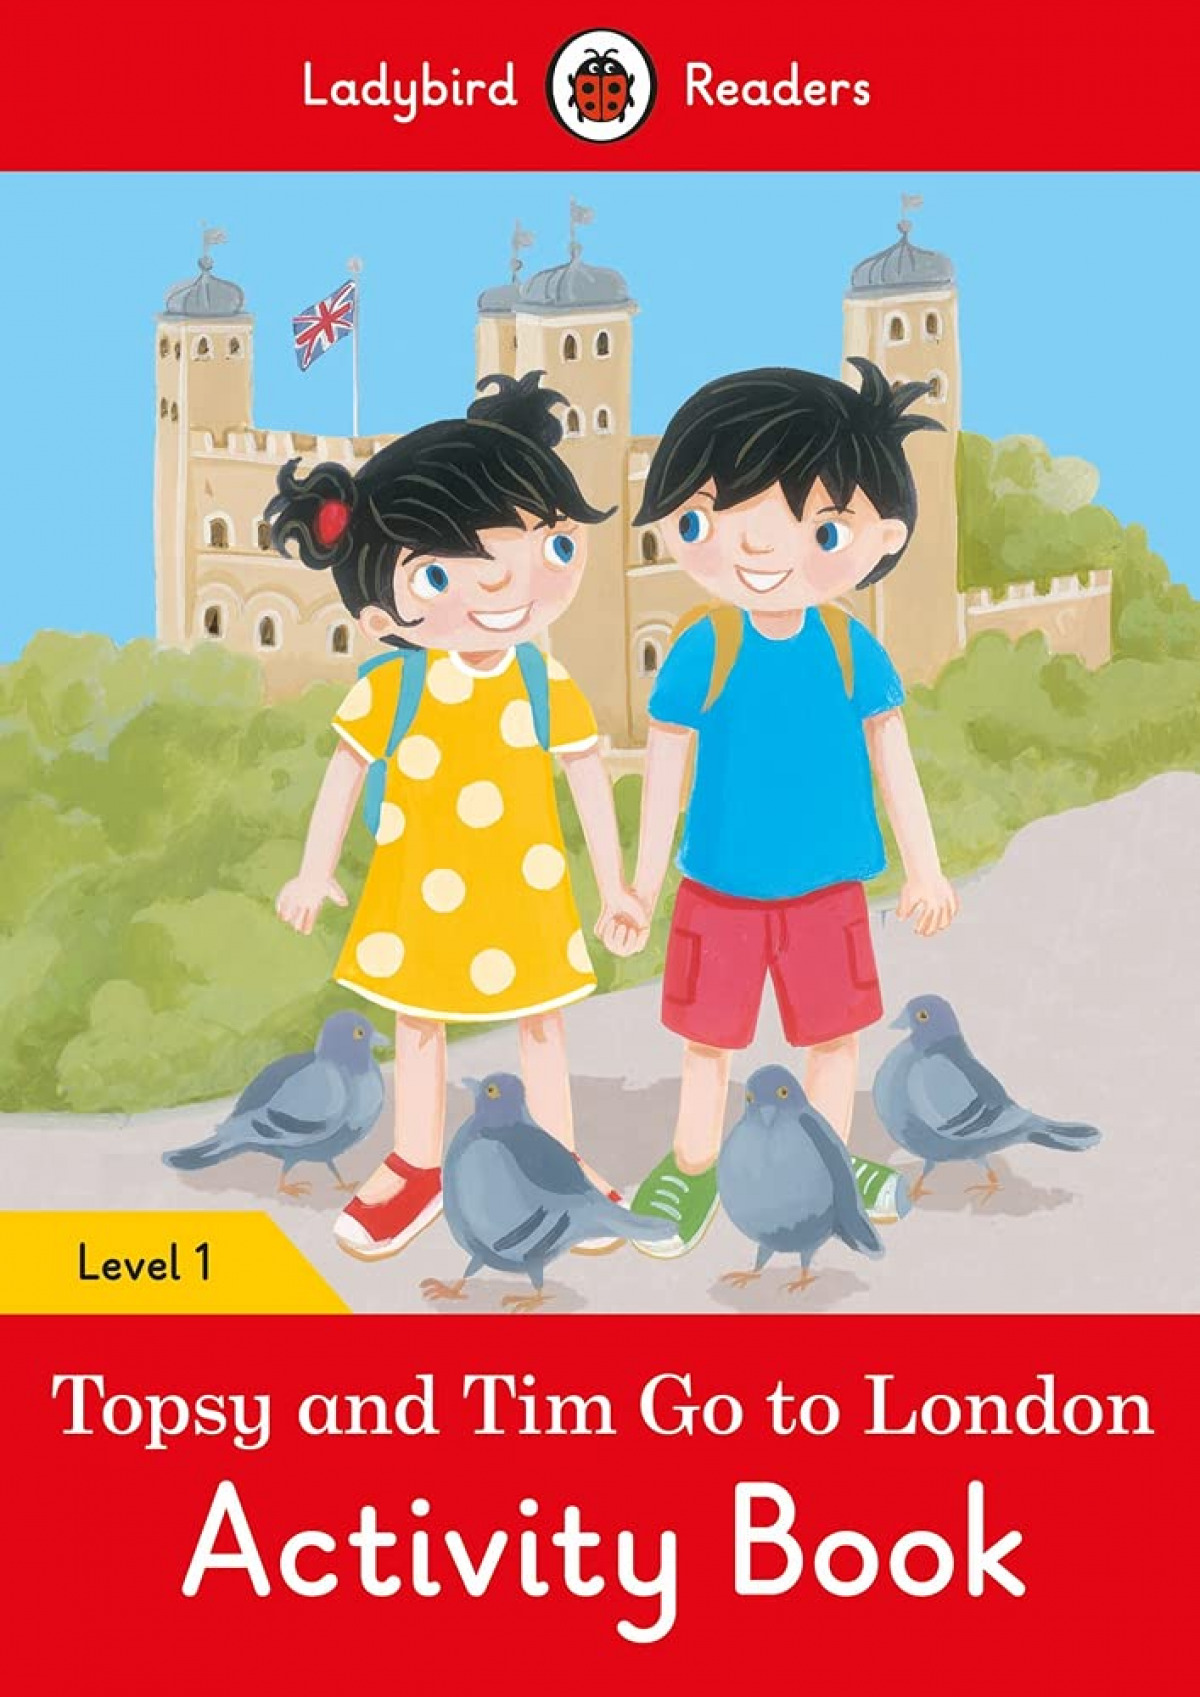 GO TO LONDON. TOPSY AND TIM